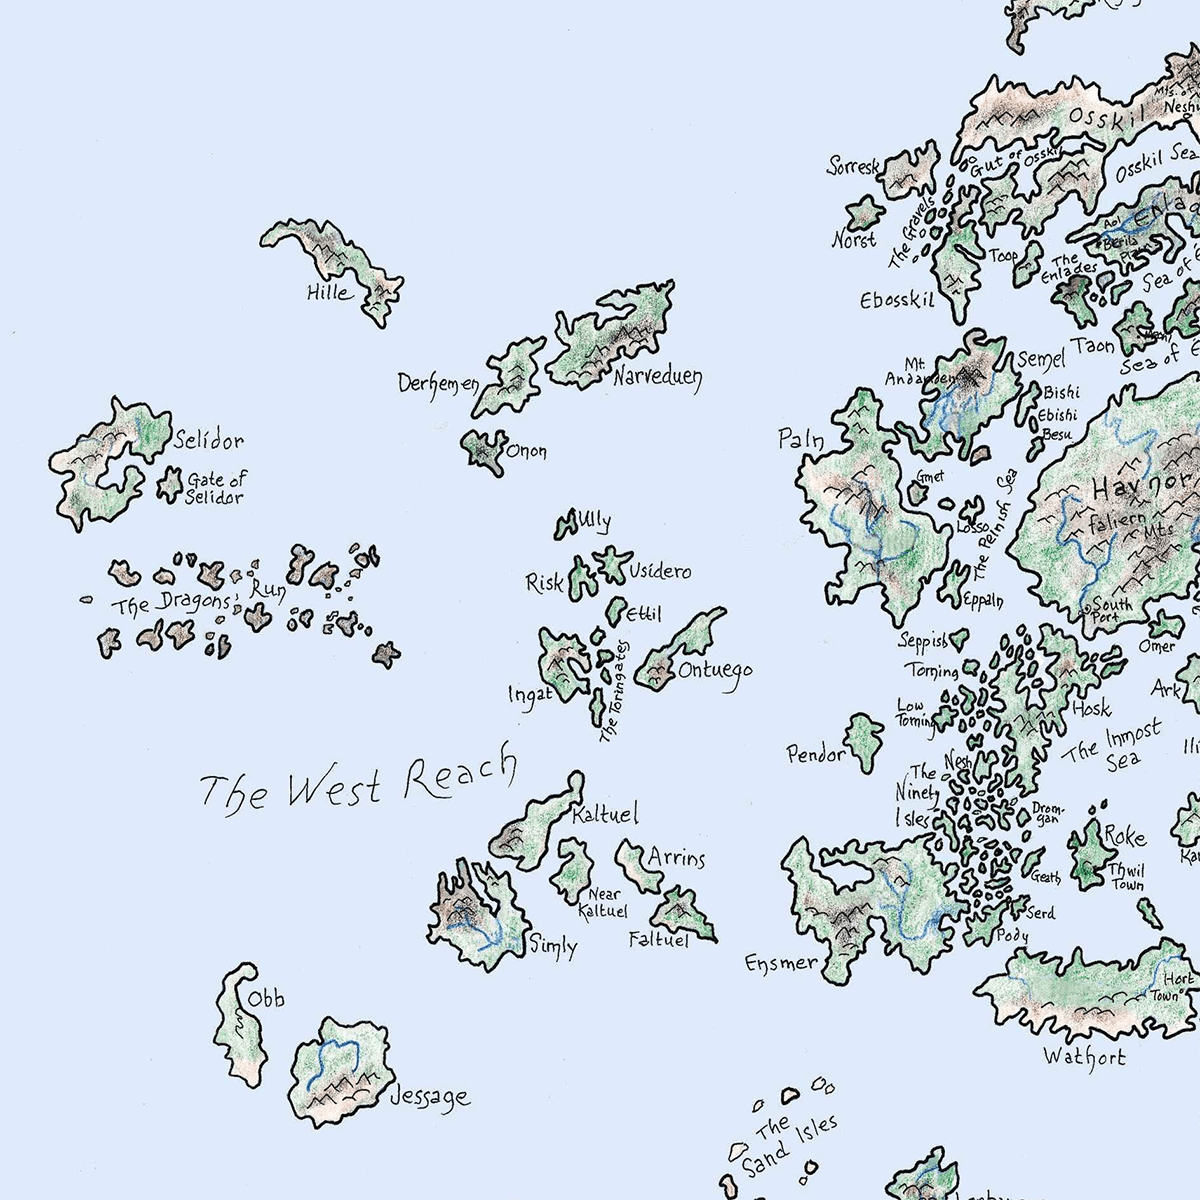 Map of Earthsea by Ursula K. Le Guin